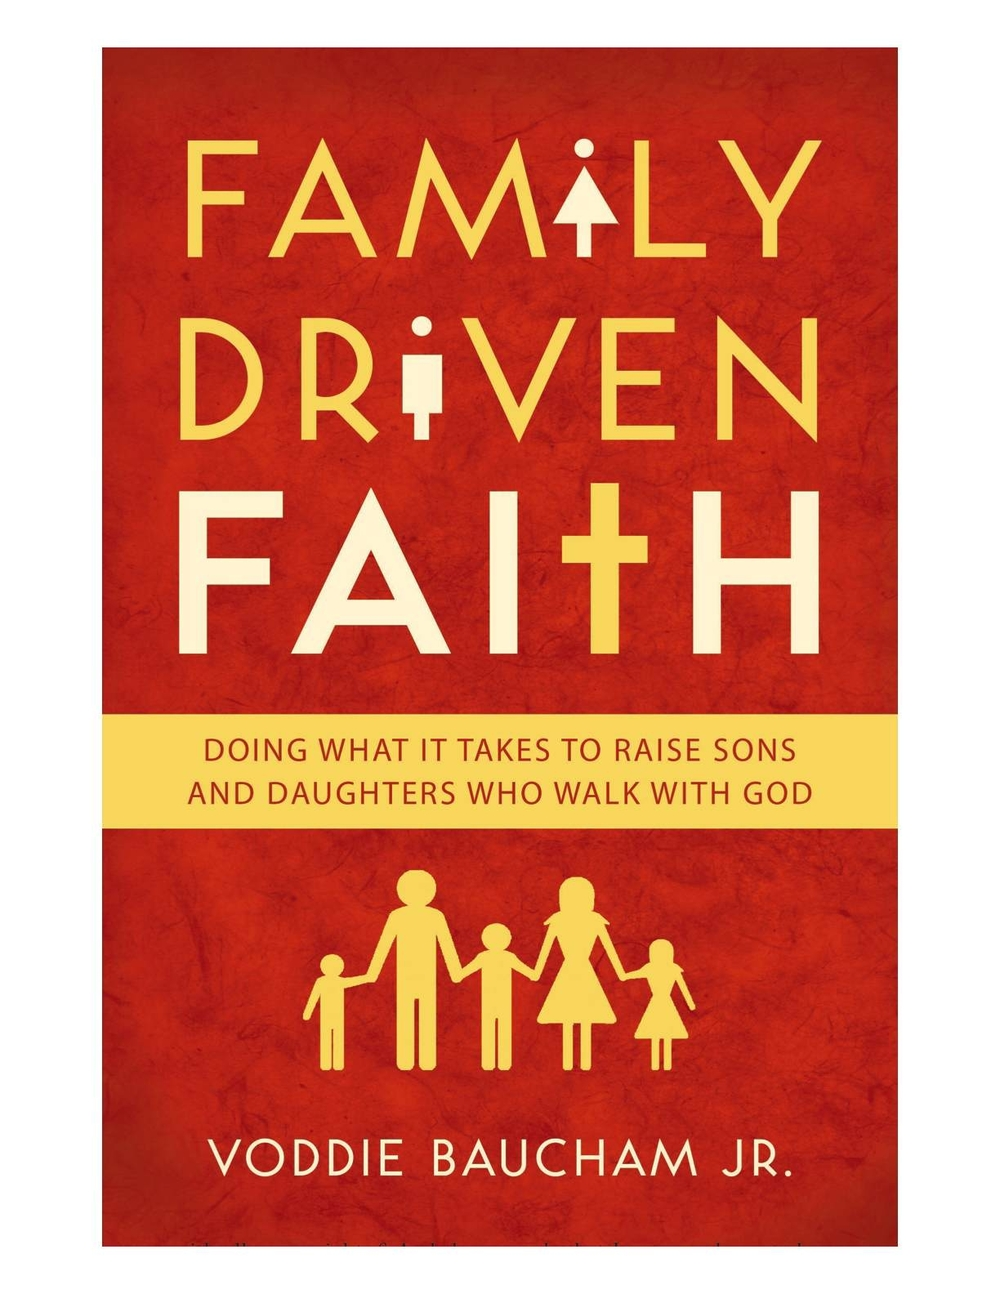 FamilyDrivenFaithBook.jpeg